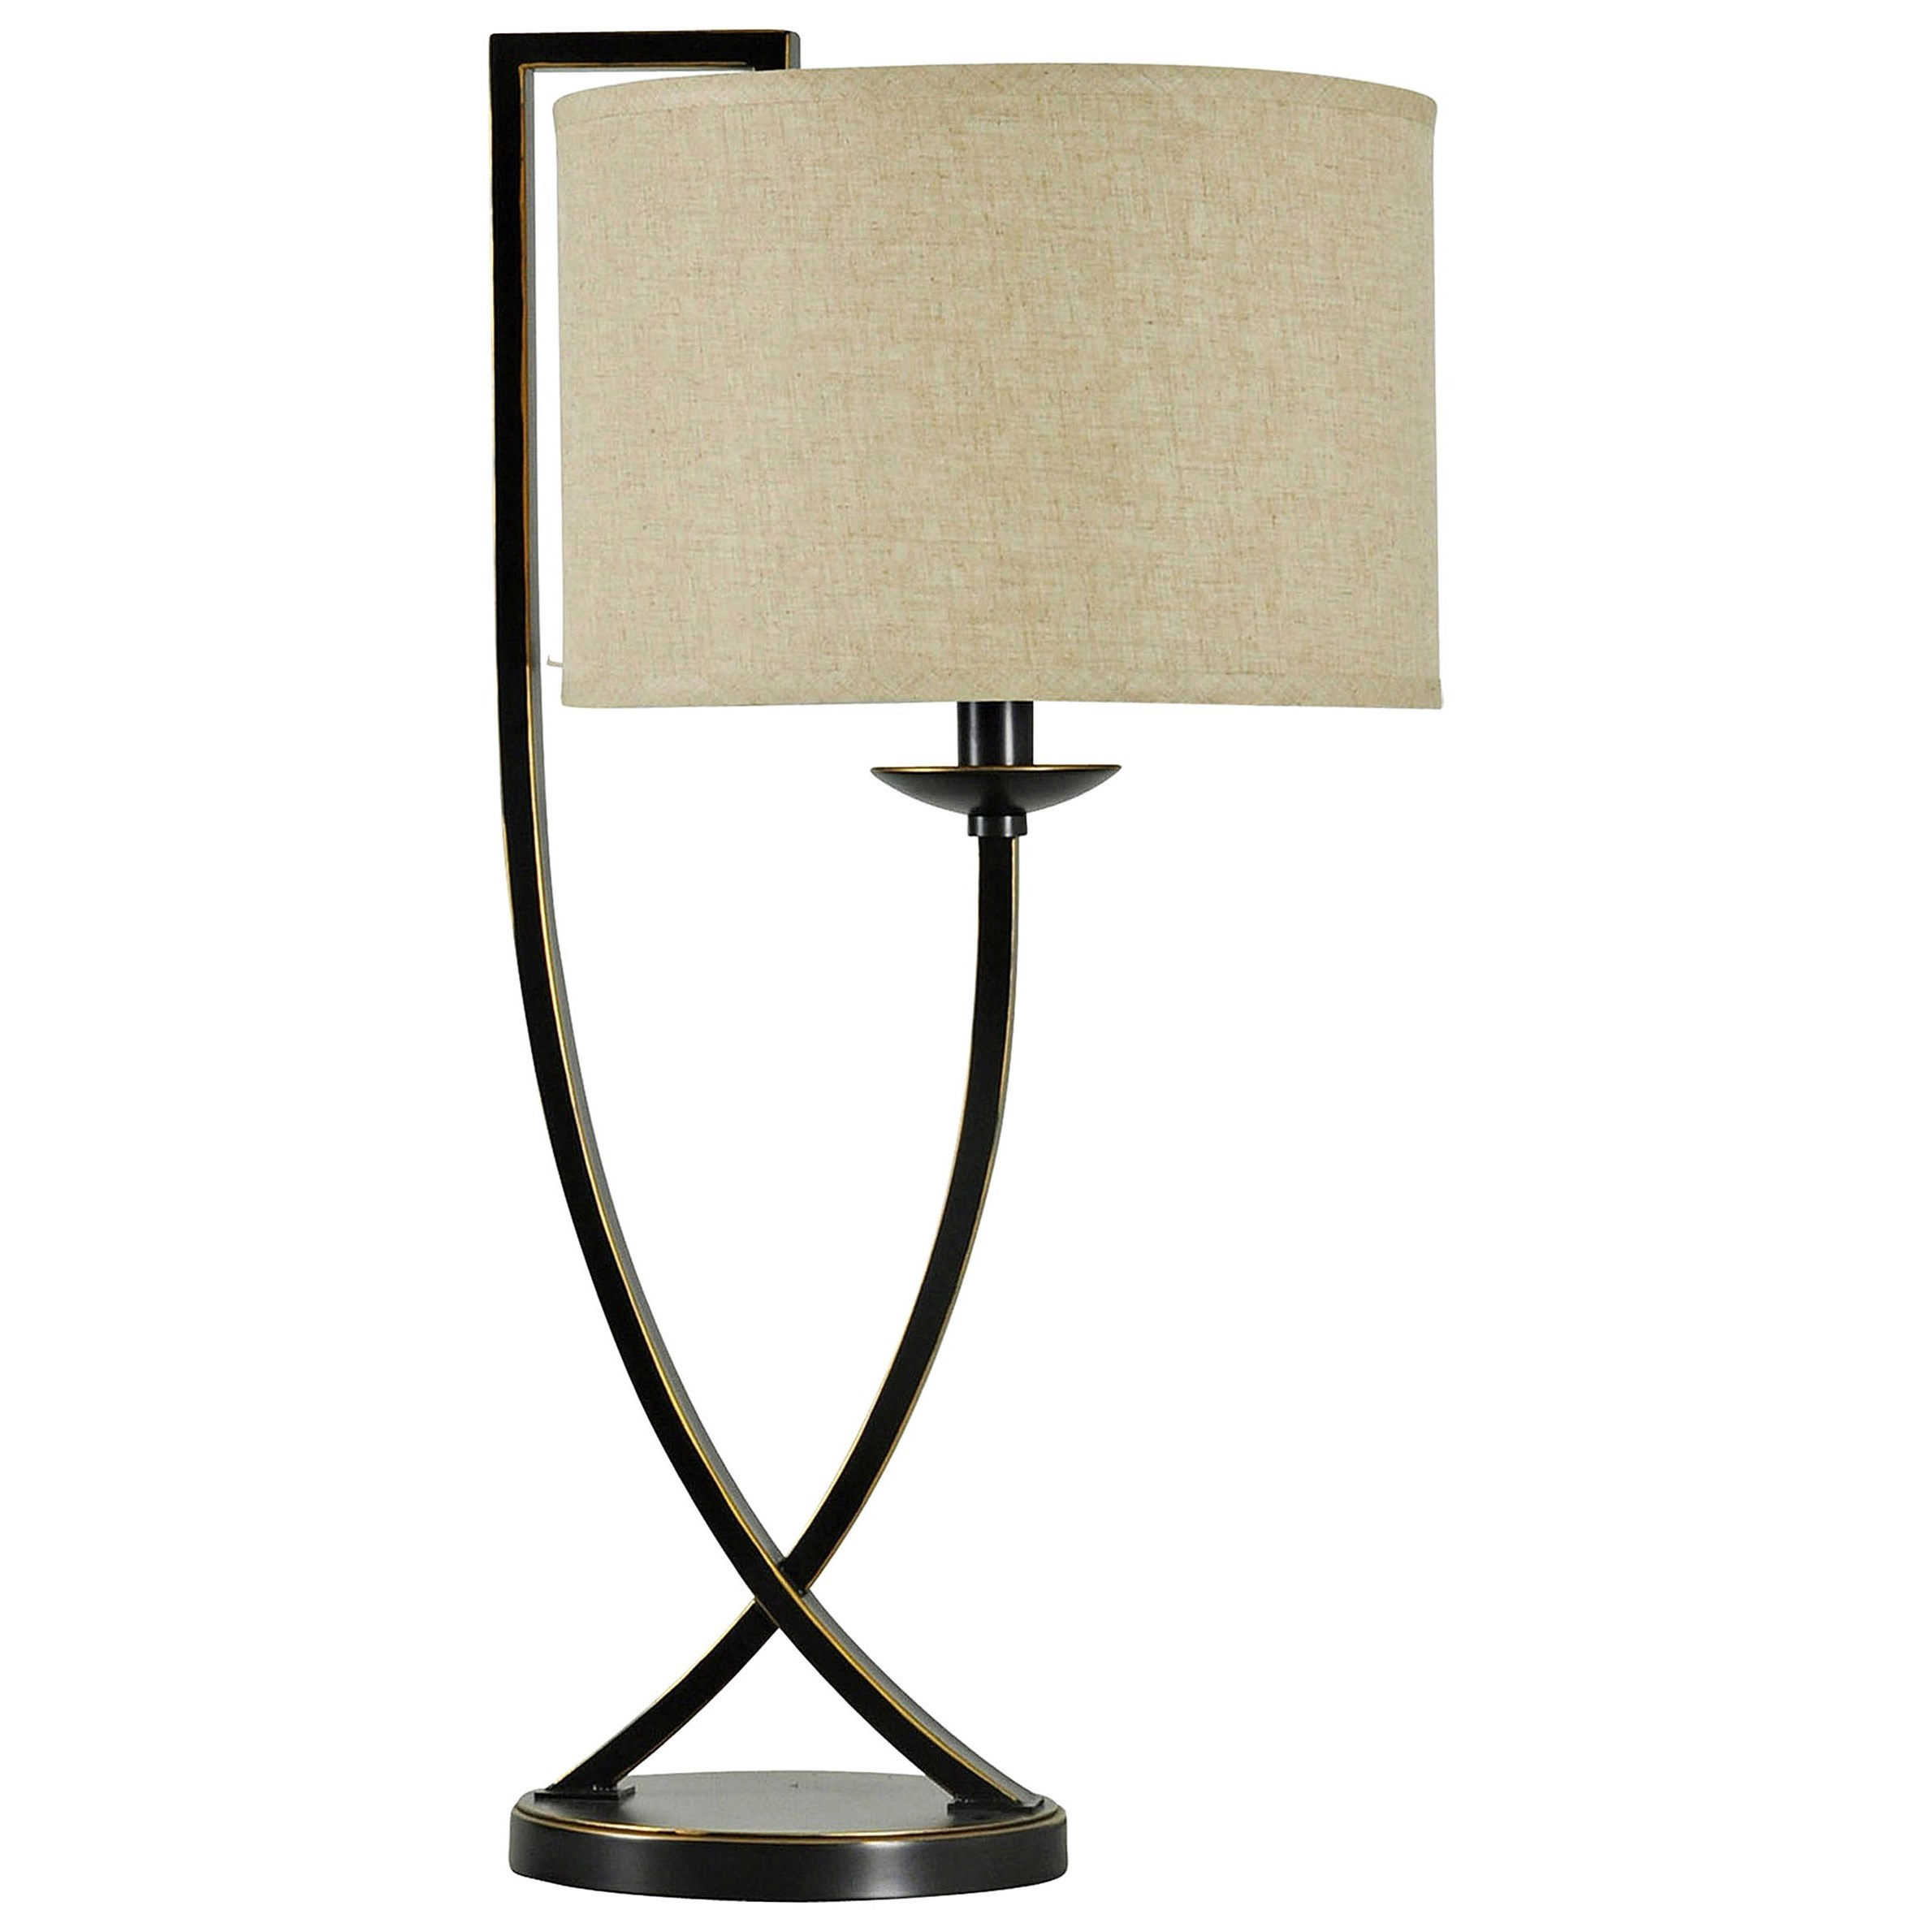 Lamps Bronze Crossed Arm Table Lamp by StyleCraft at Alison Craig Home Furnishings